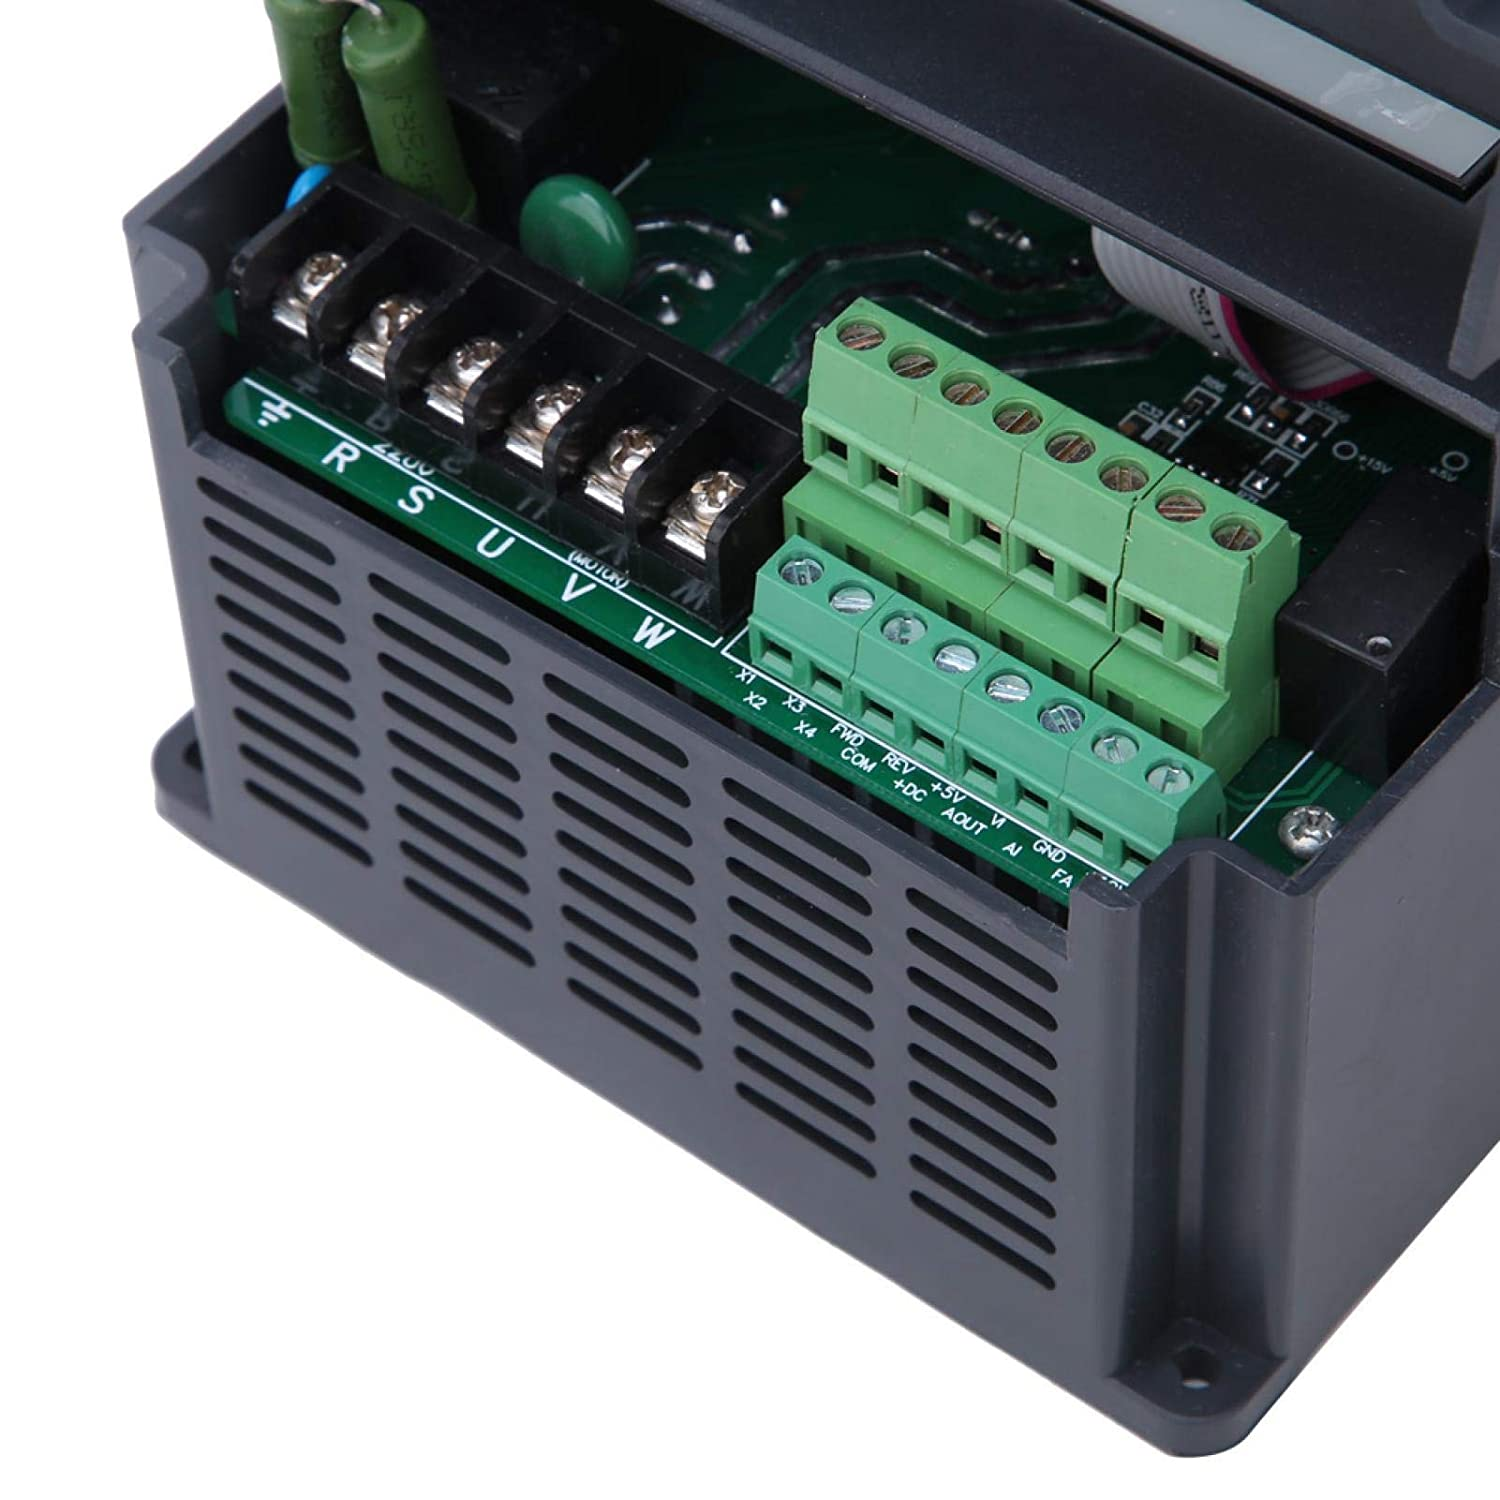 Max Discount mail order 73% OFF Frequency Inverter DJD JH-S2-2T Elevator 0.75kw for Industry